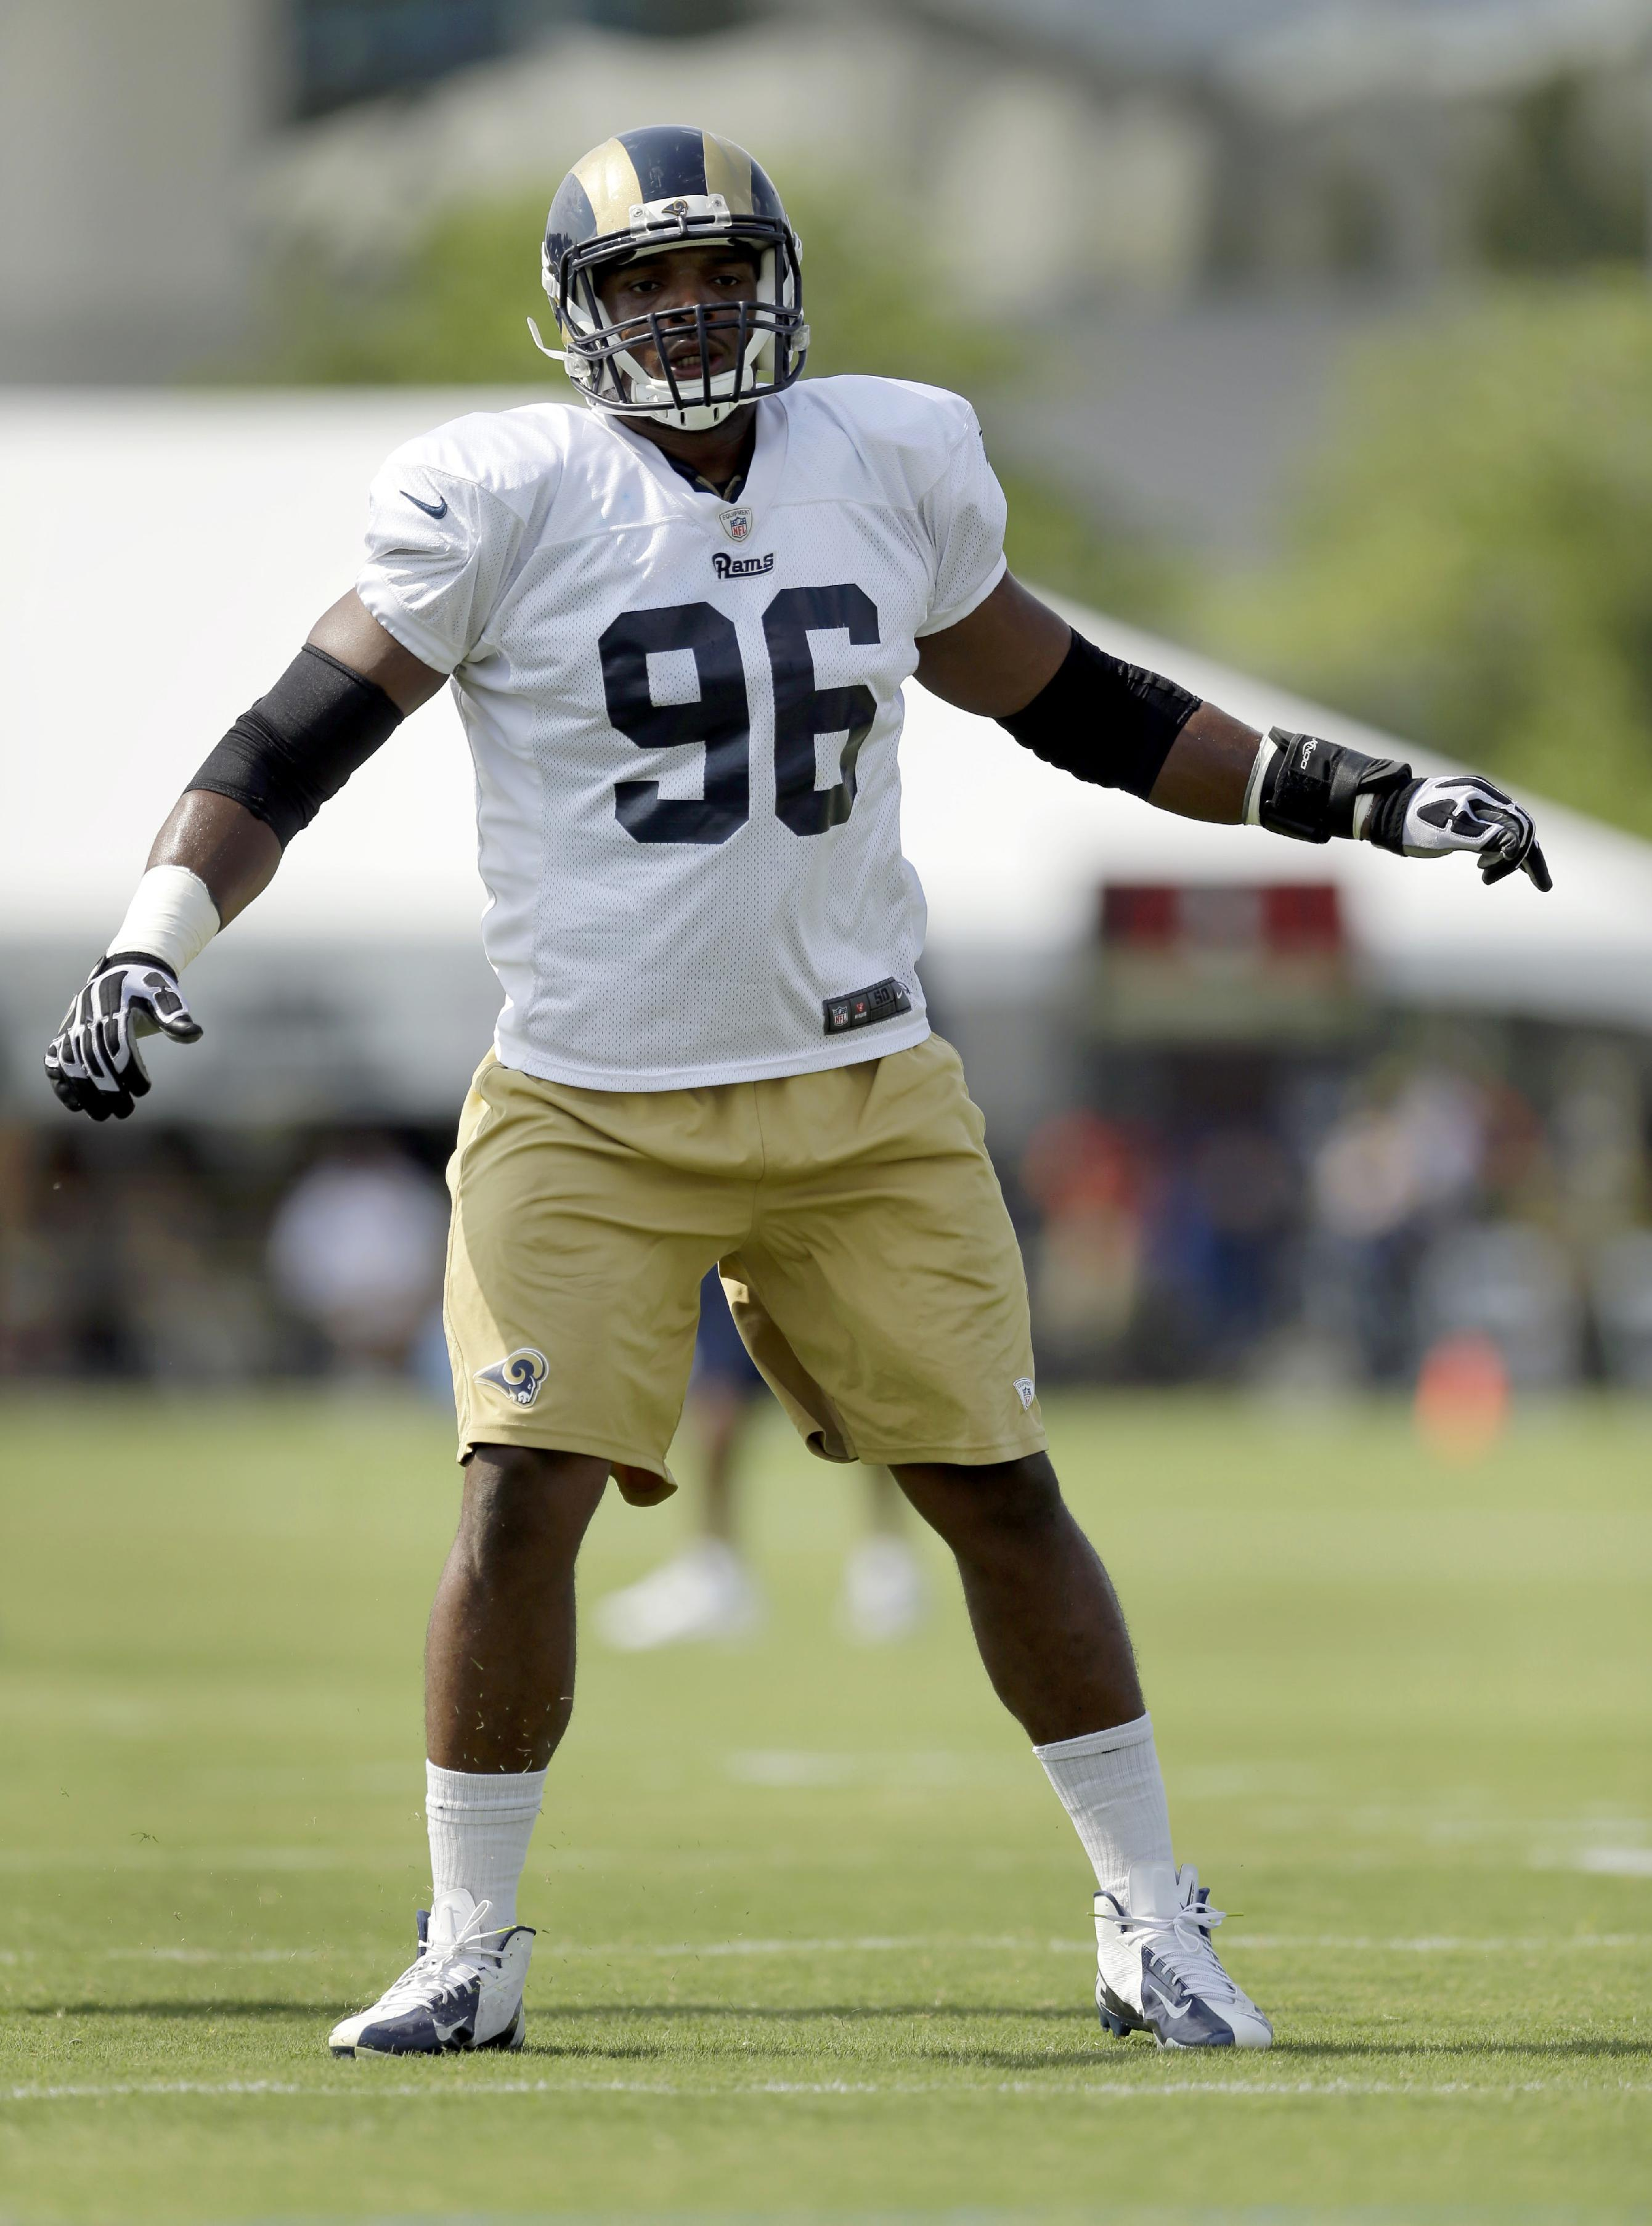 St. Louis Rams defensive end Michael Sam takes part in a drill during training camp at the NFL football team's practice facility Tuesday, July 29, 2014, in St. Louis